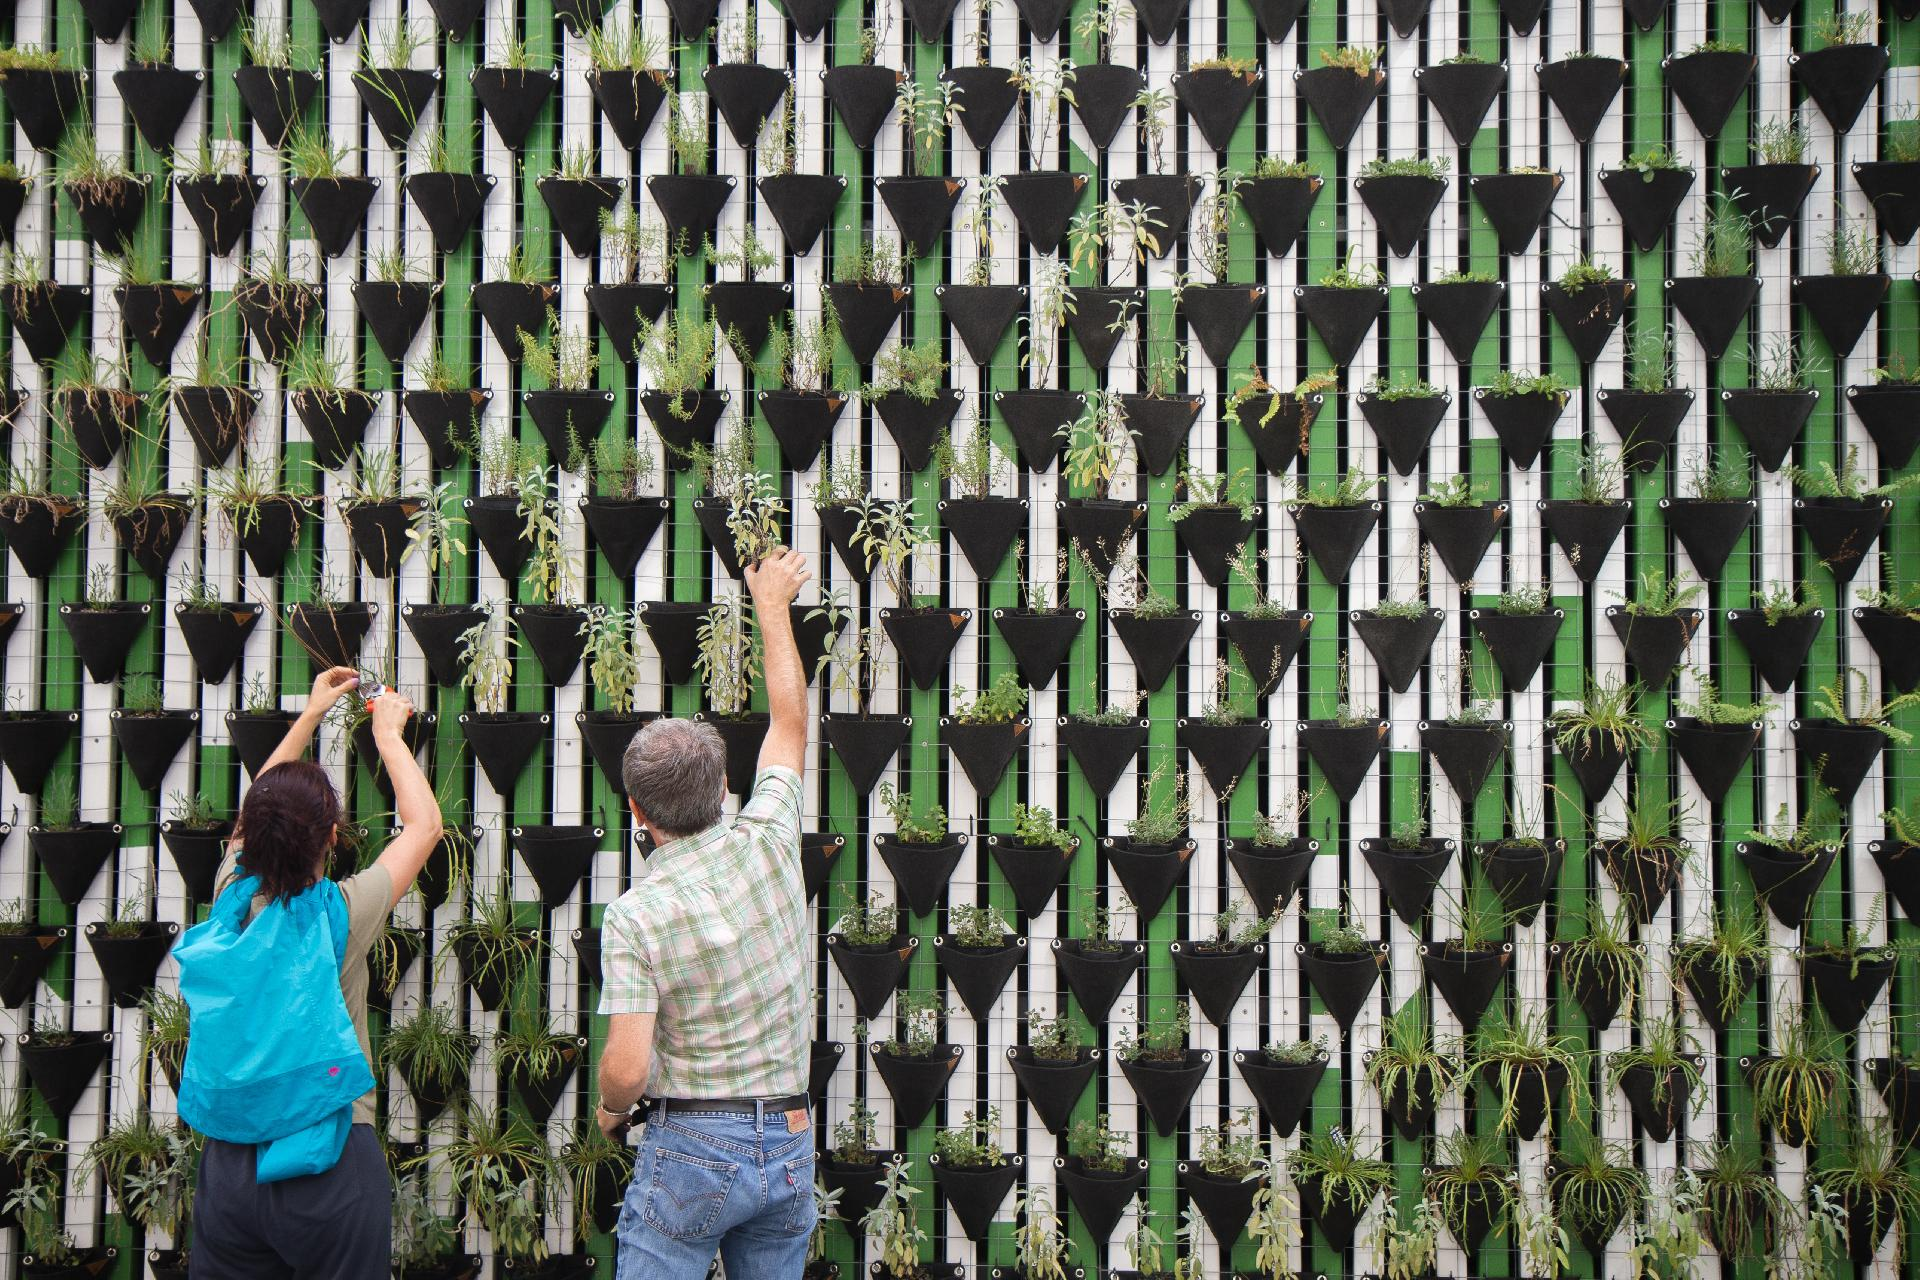 20 Ways That Vertical Gardening Helps the Environment